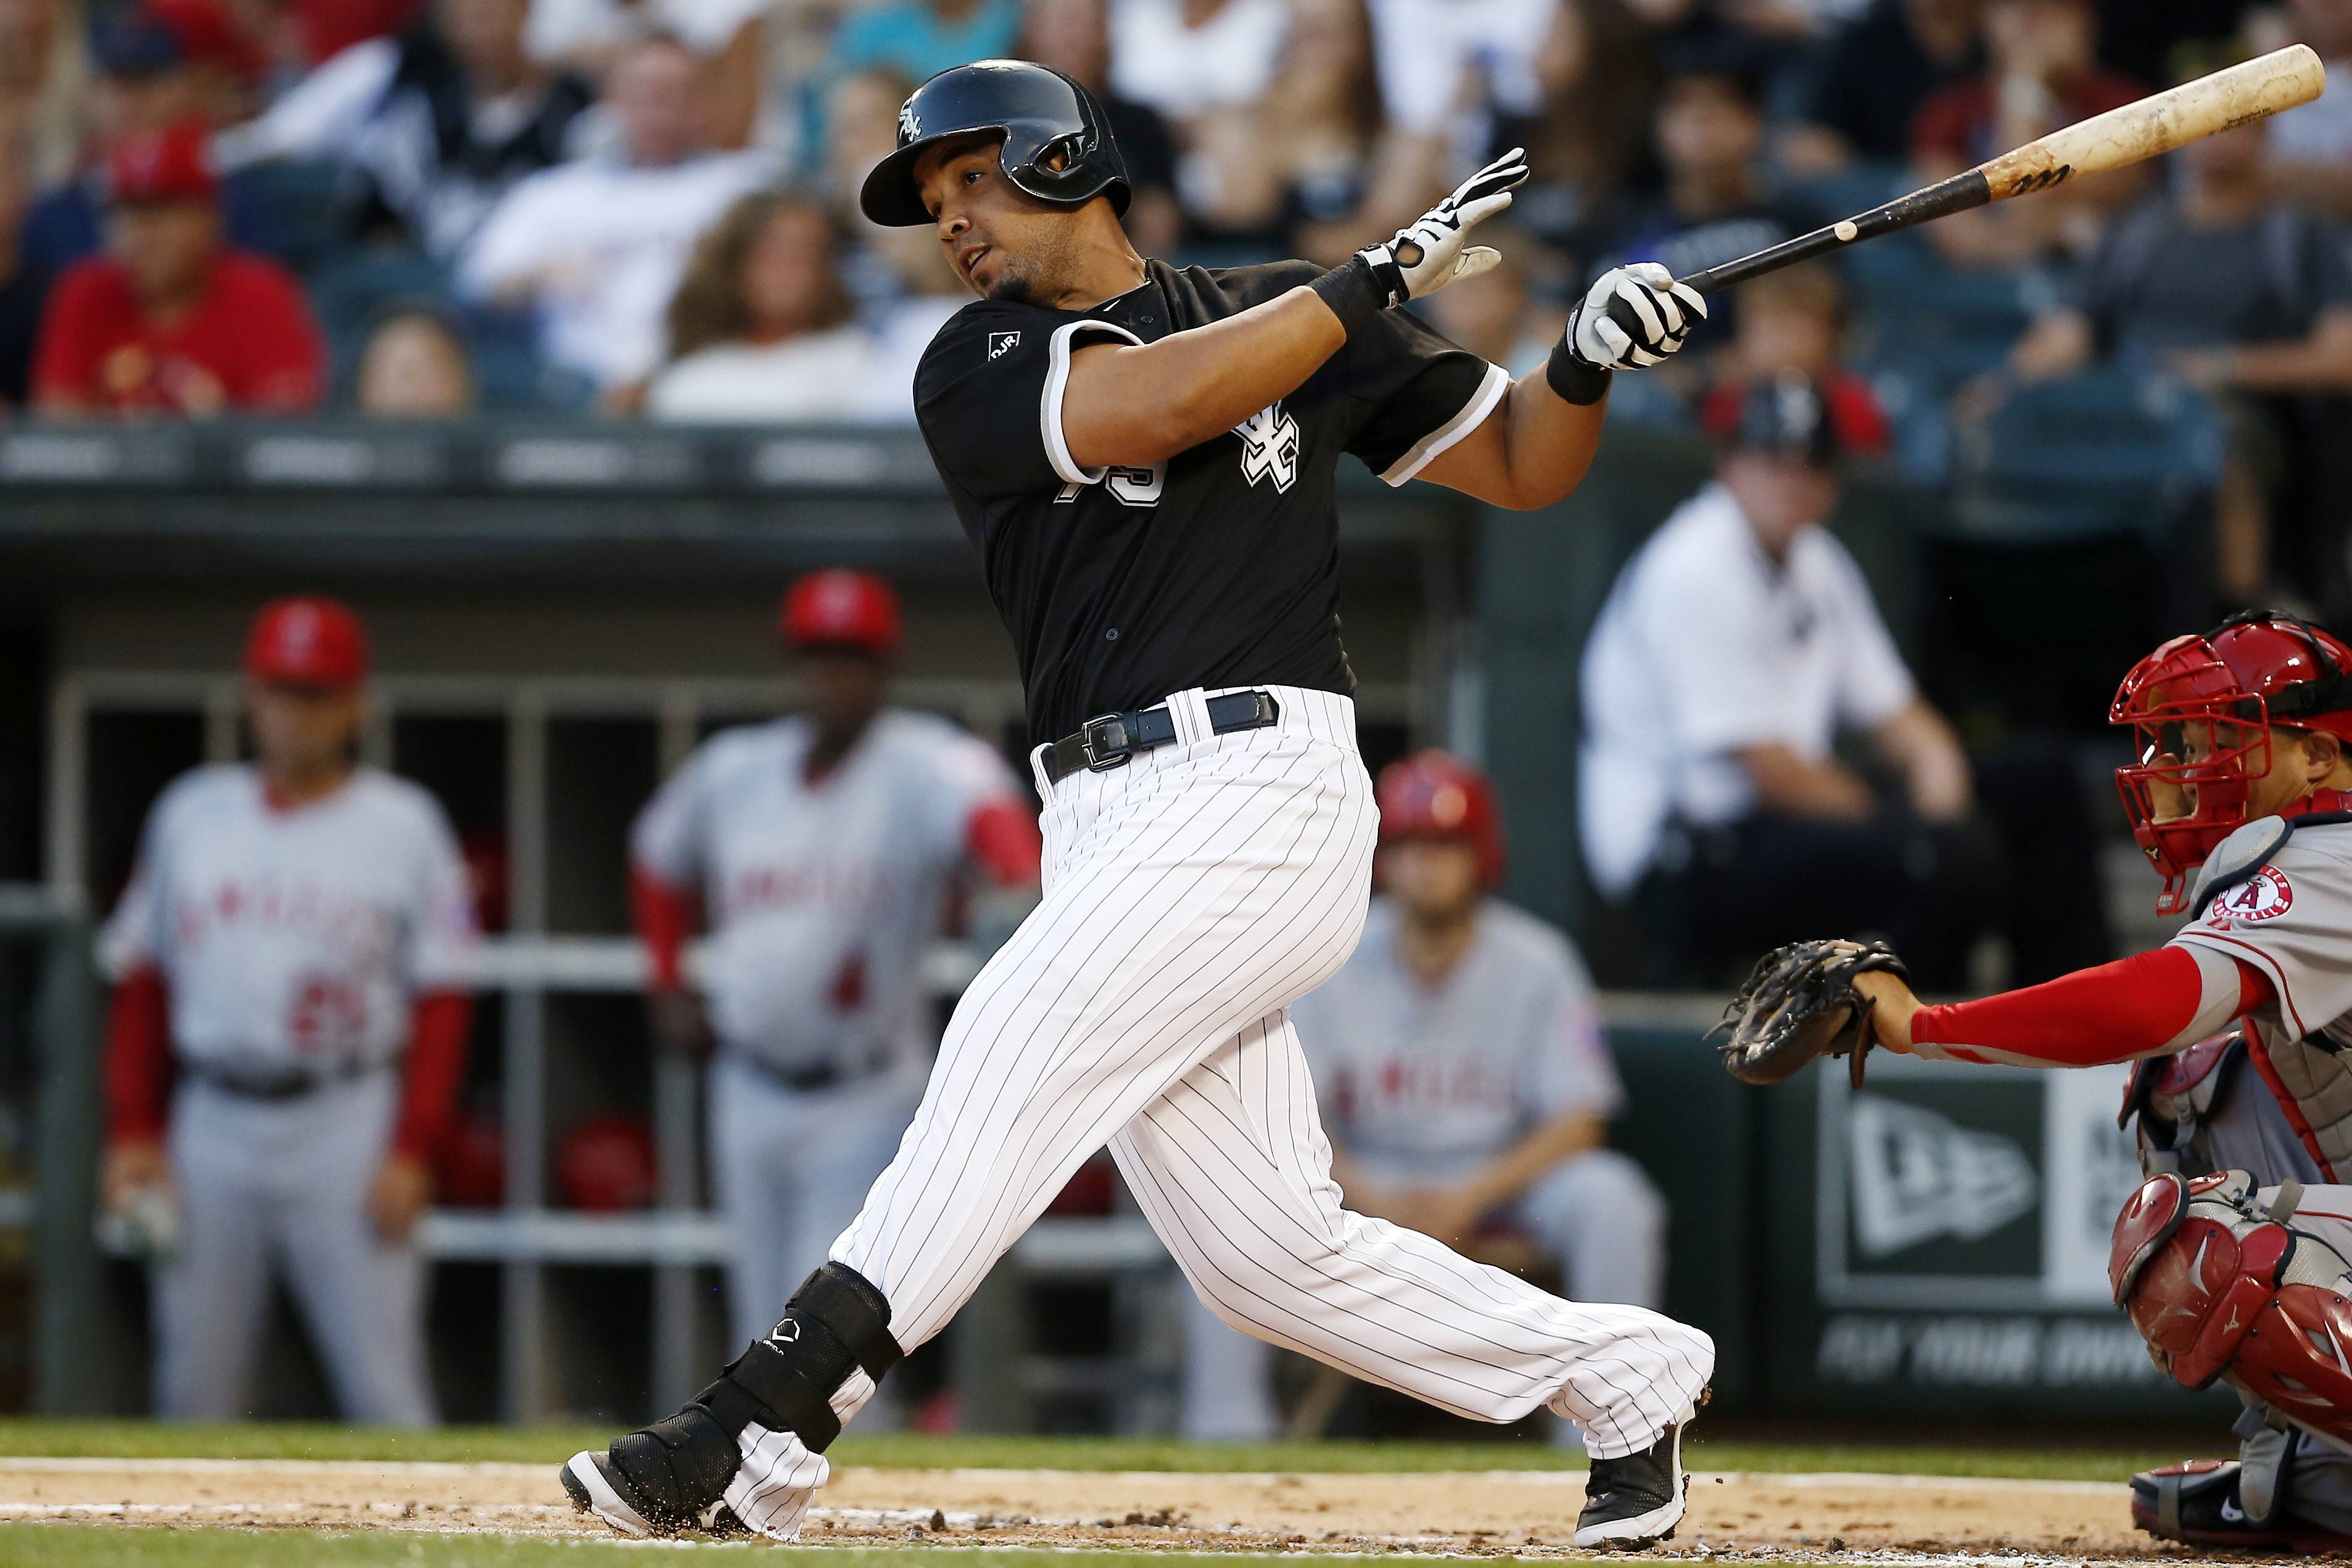 White Sox first baseman Jose Abreu could turn out to be the best free-agent signing ever for a Chicago sports team.